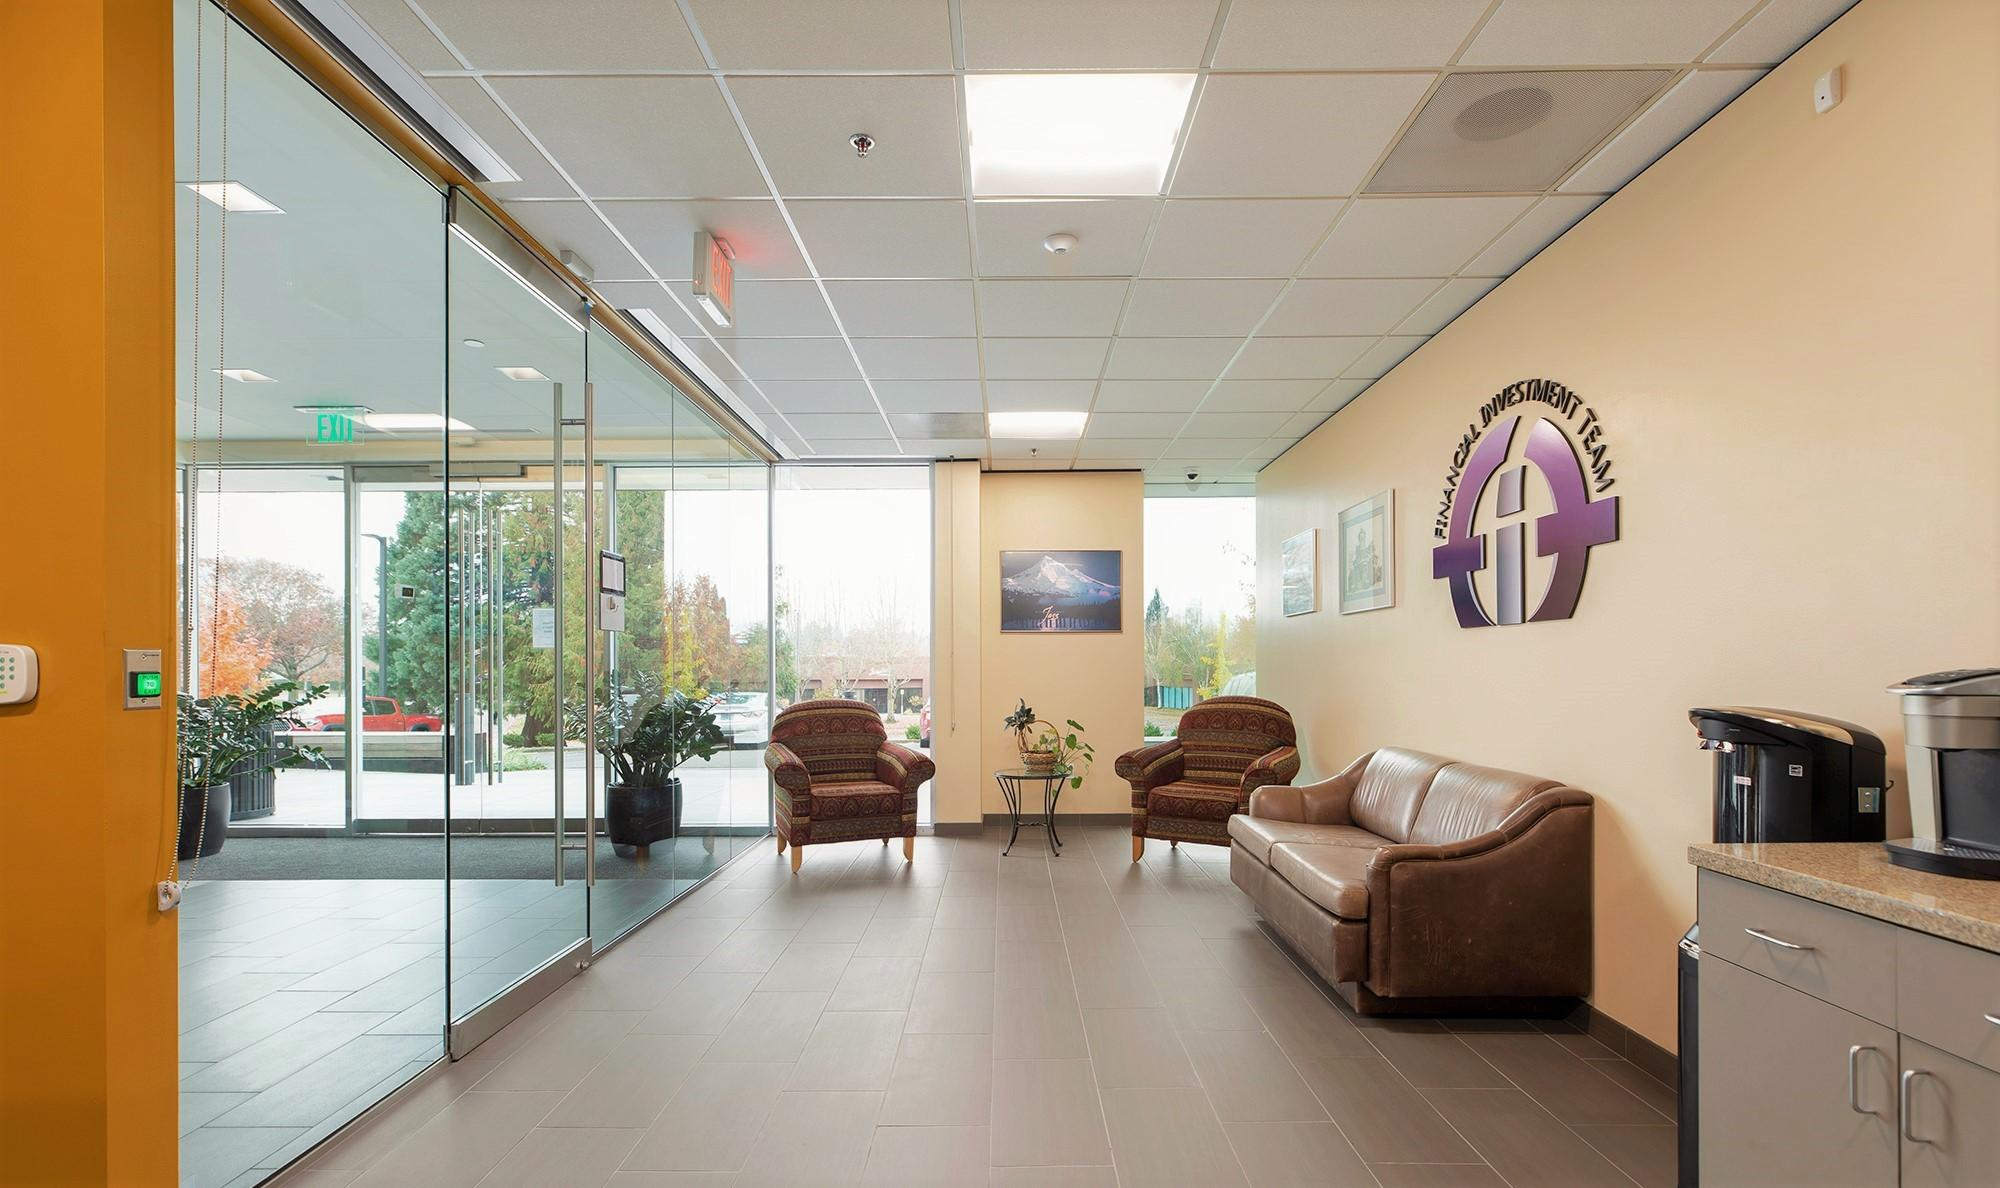 What's Been Movin' and Groovin' at the FIT Office? - Written by Diana LJ Harrison in Portland, Oregon Thumbnail